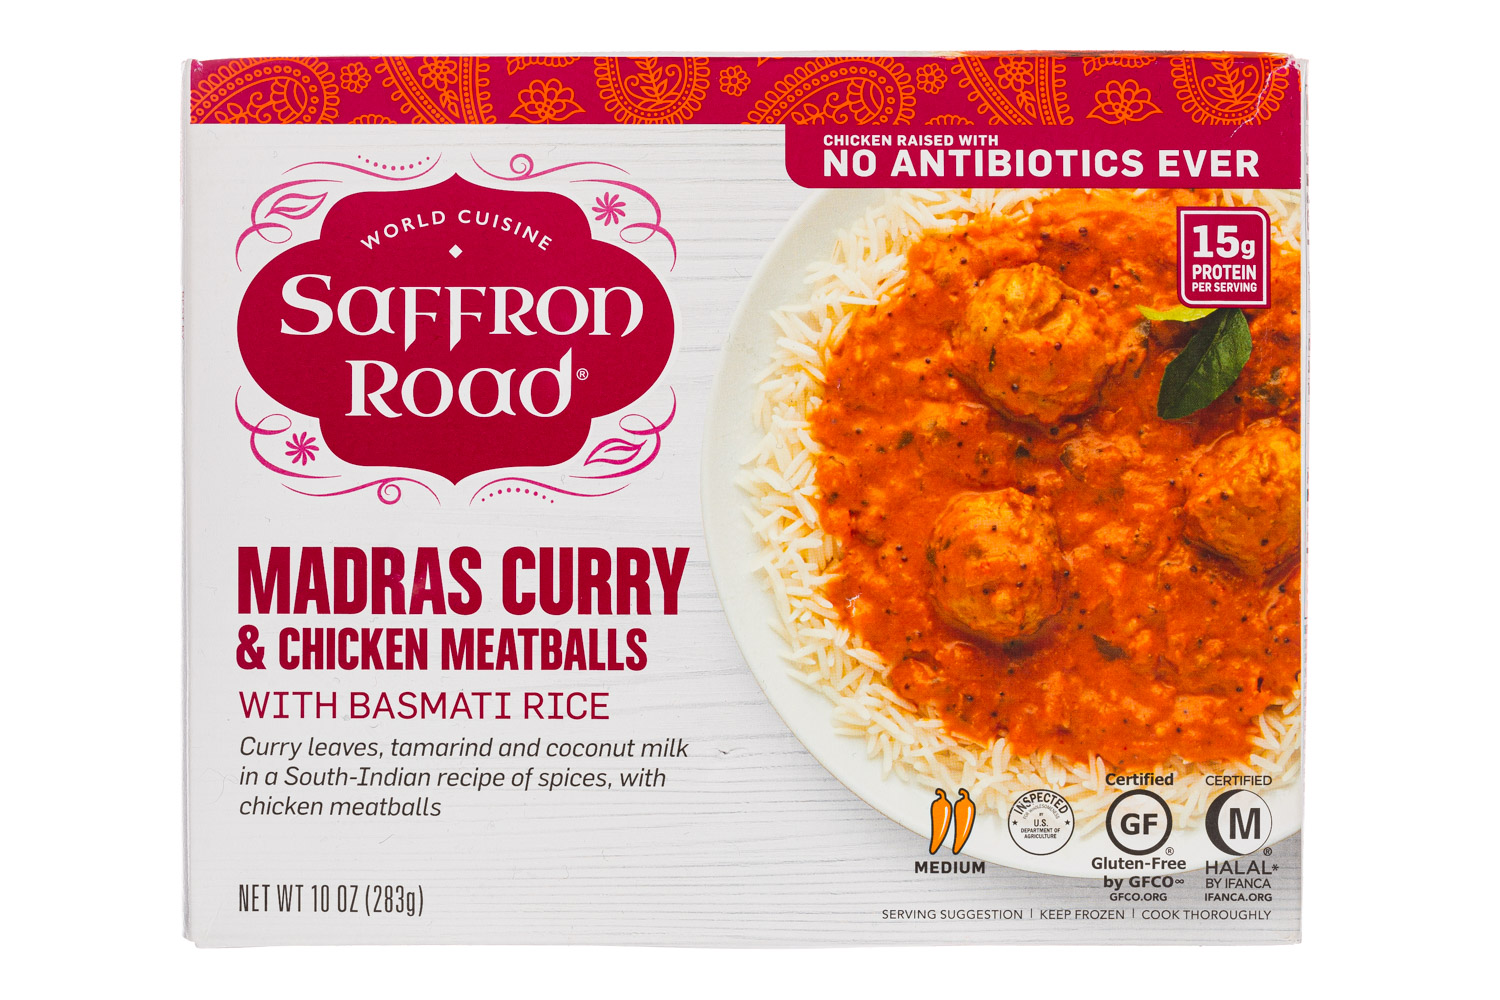 Madras Curry & Chicken Meatballs with Basmati Rice